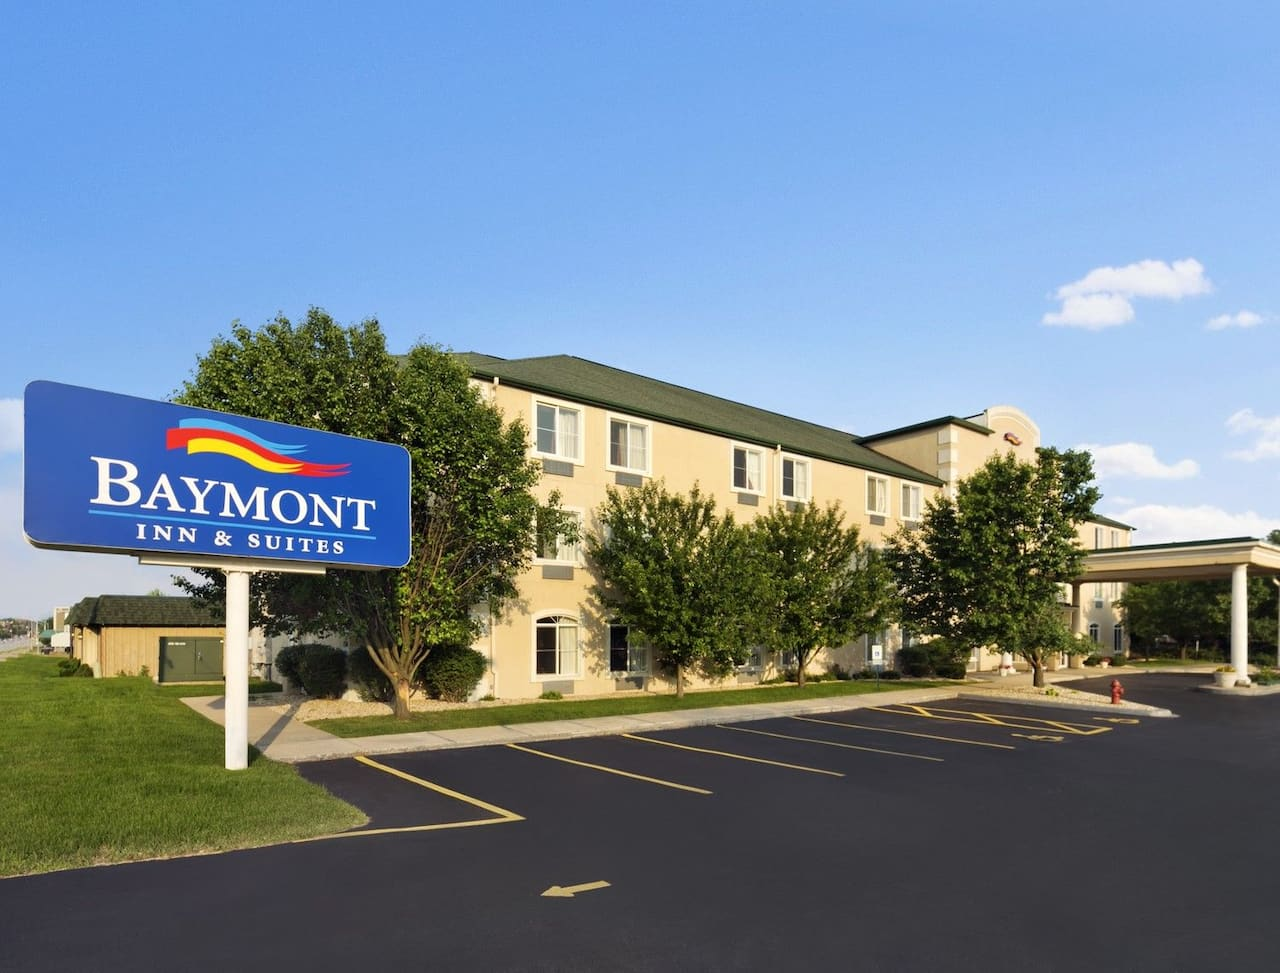 Baymont Inn & Suites DeKalb in Malta, Illinois